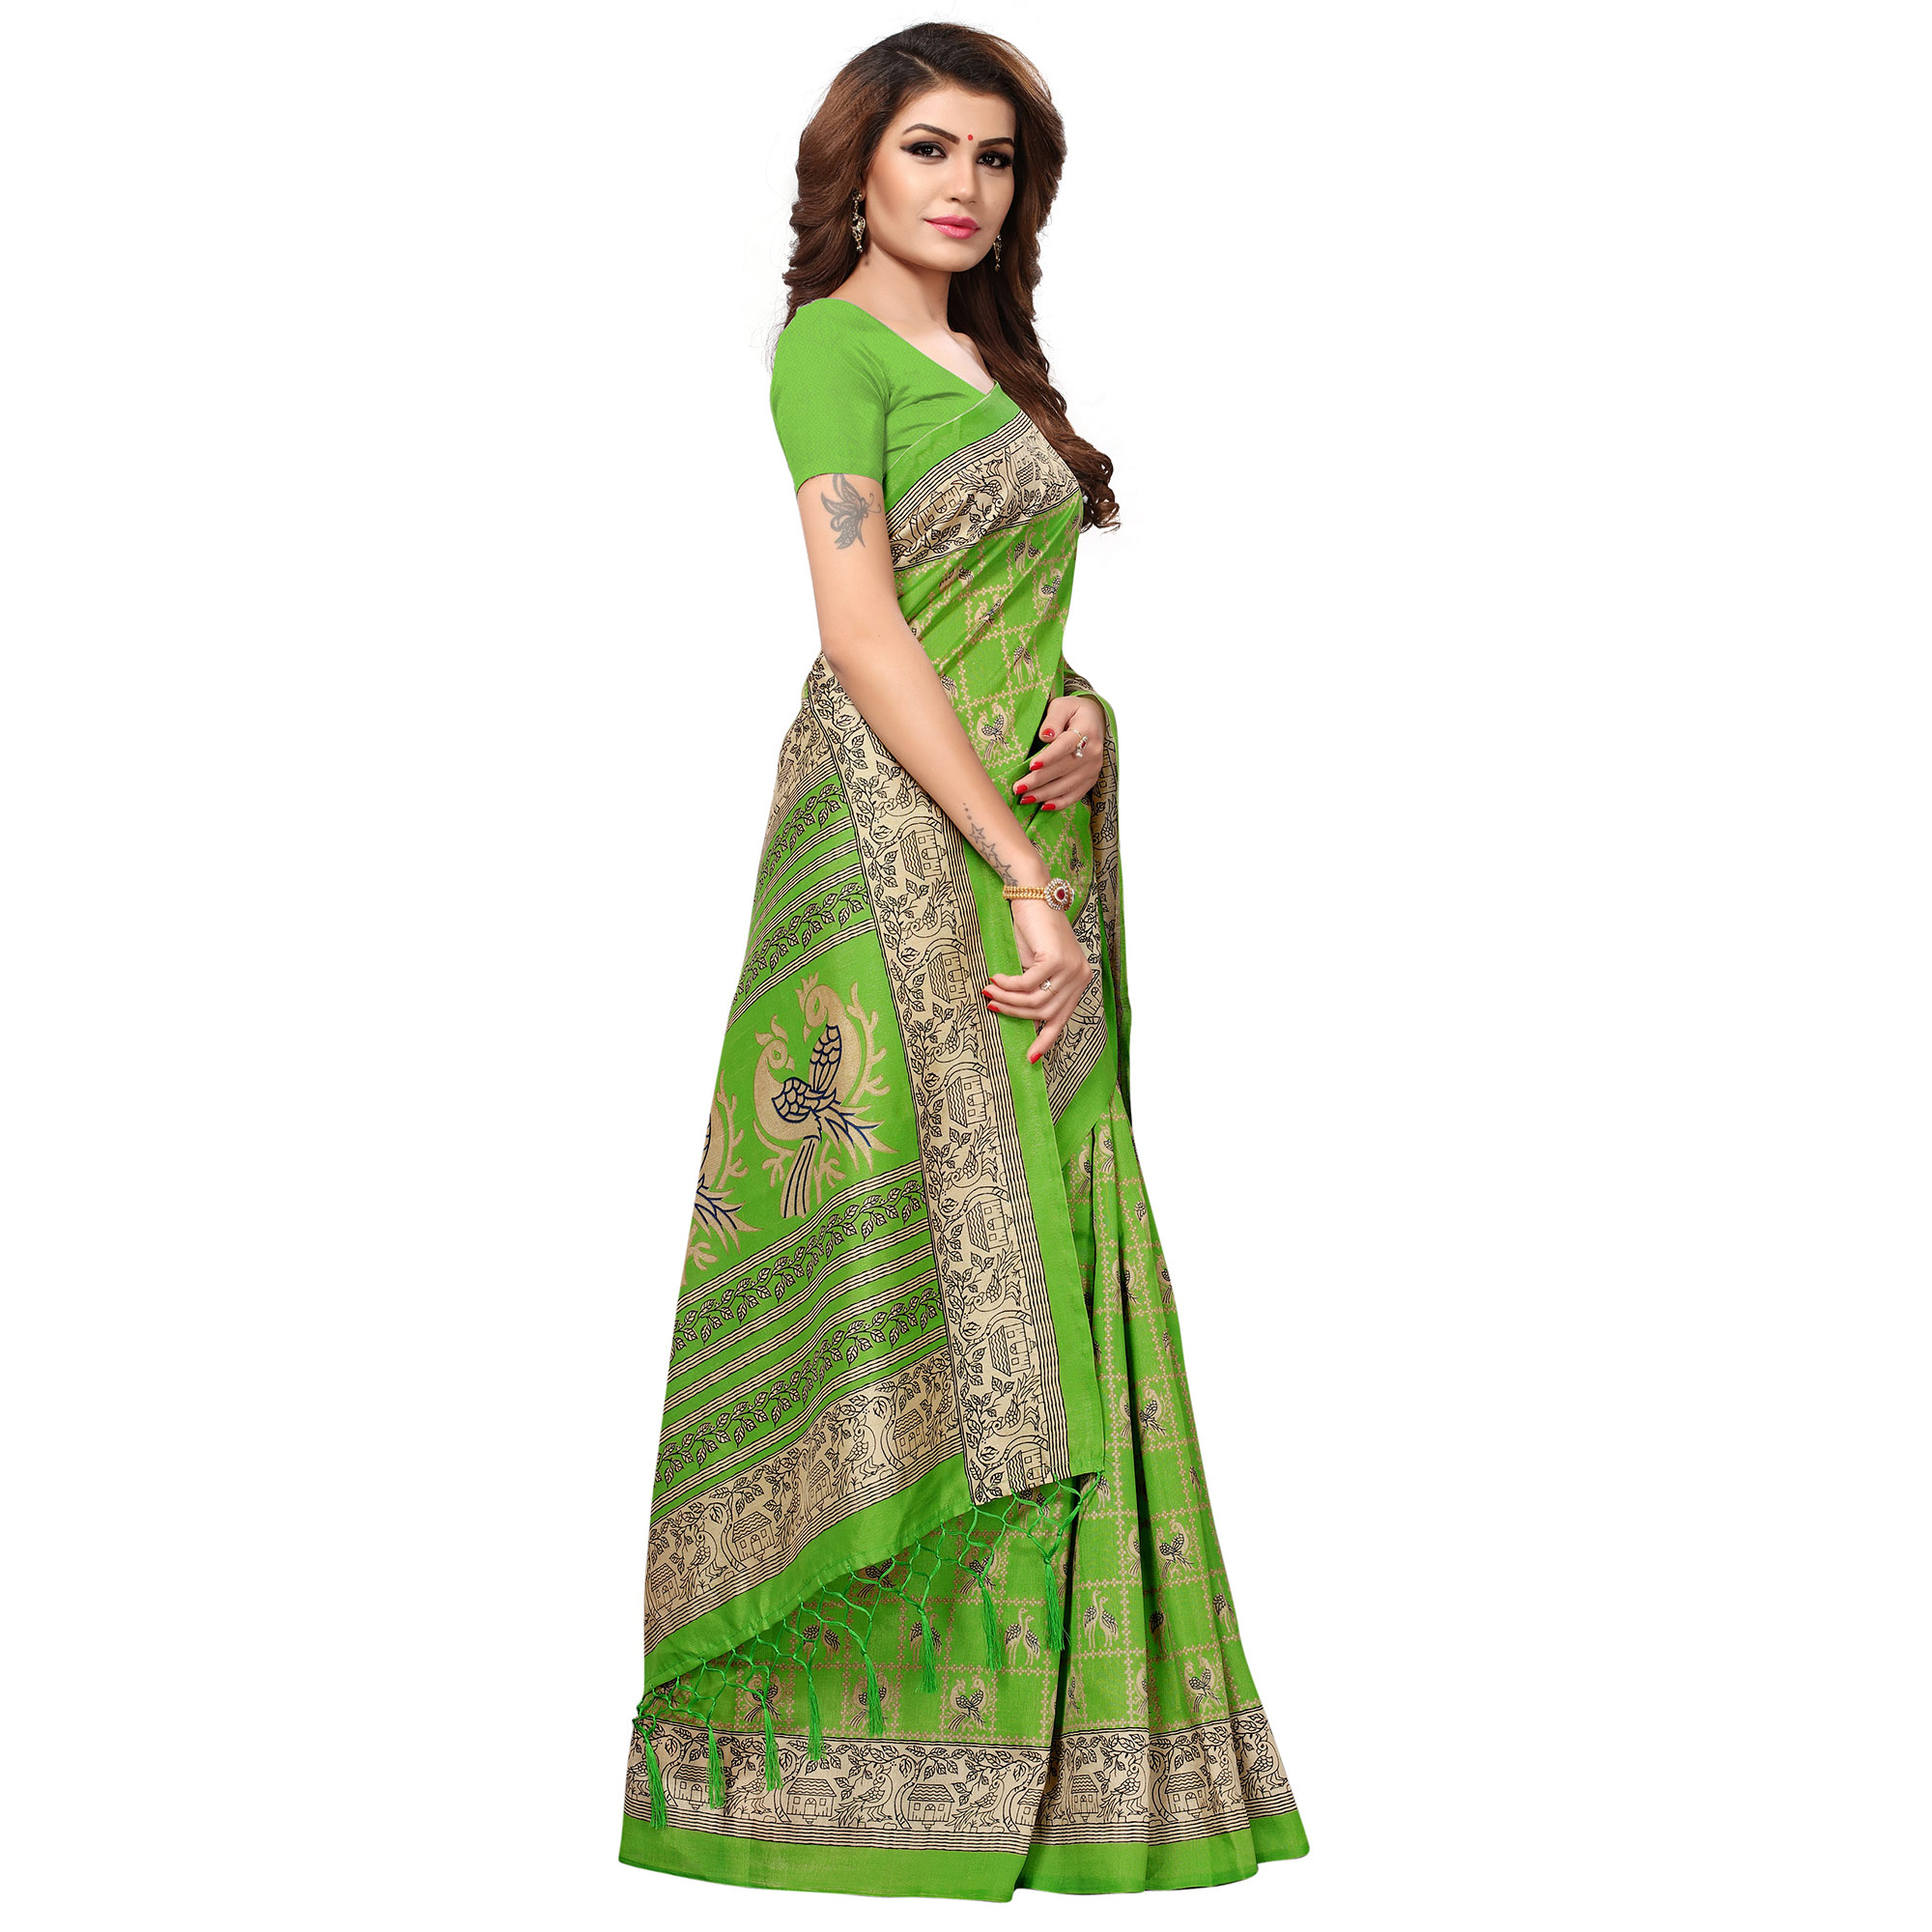 Unique Bright Green Colored Casual Printed Kashmiri Silk Saree